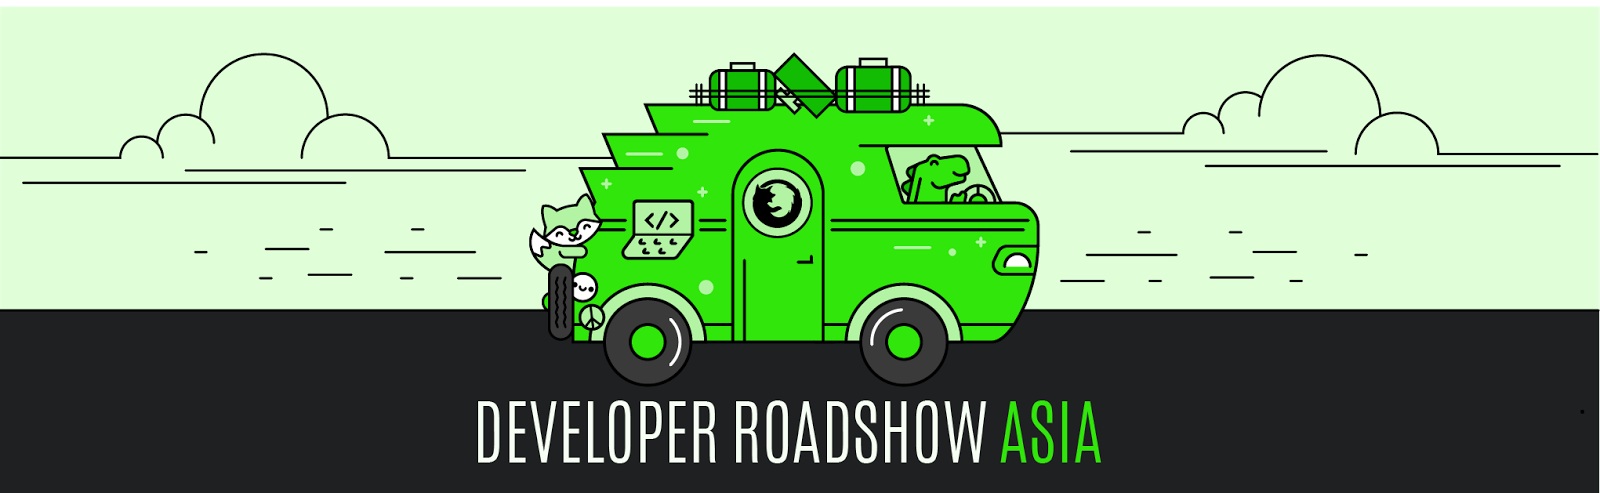 developer roadshow asia